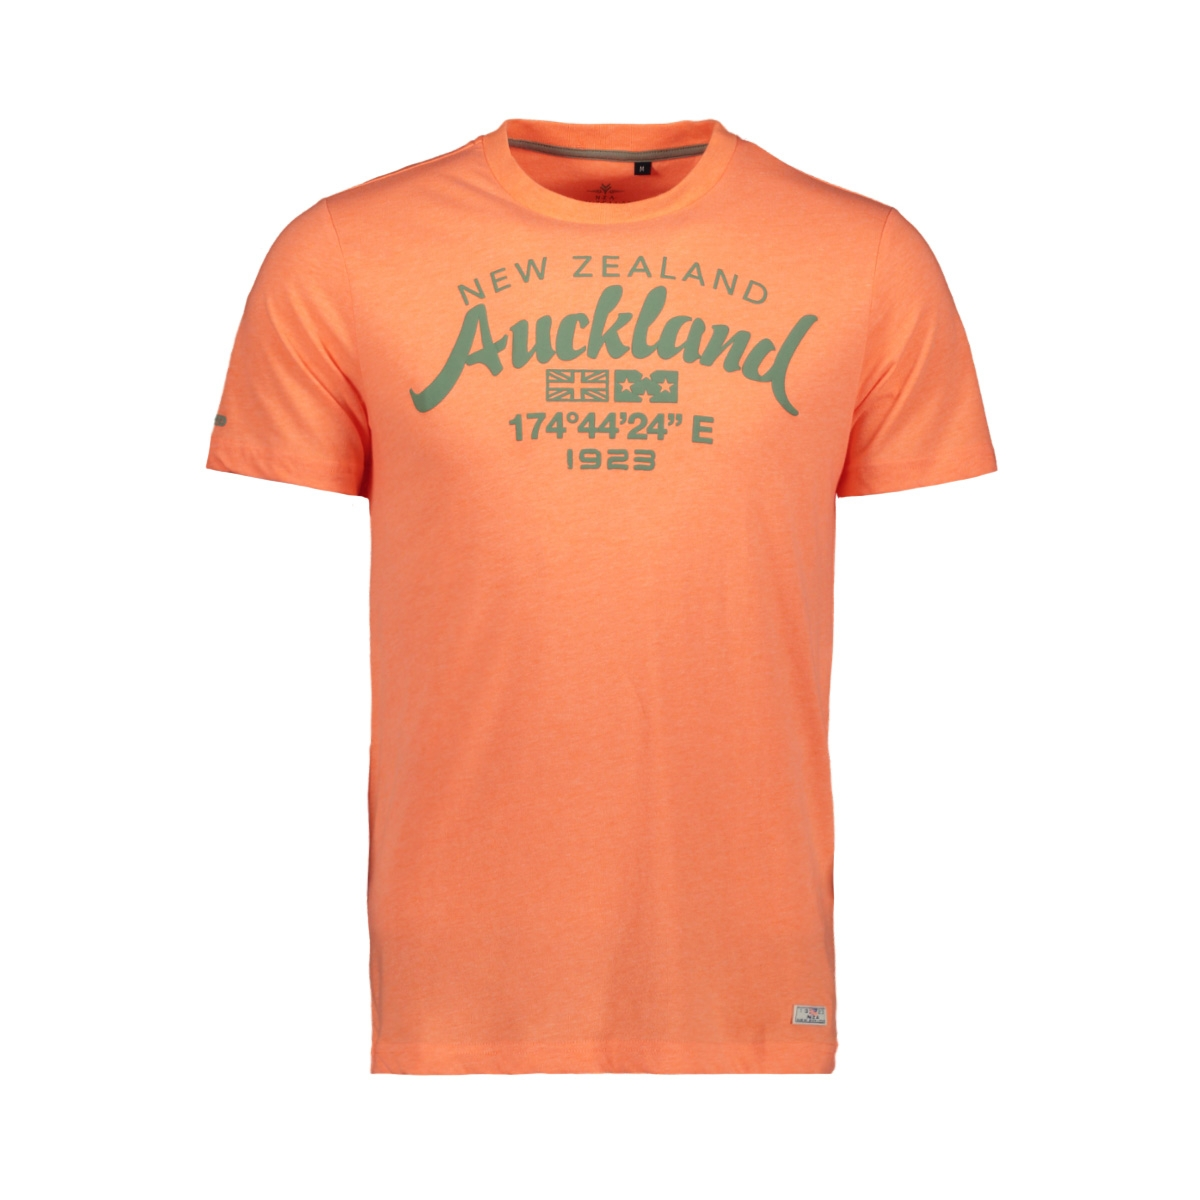 tarawera 20cn721 nza t-shirt 641 peach orange